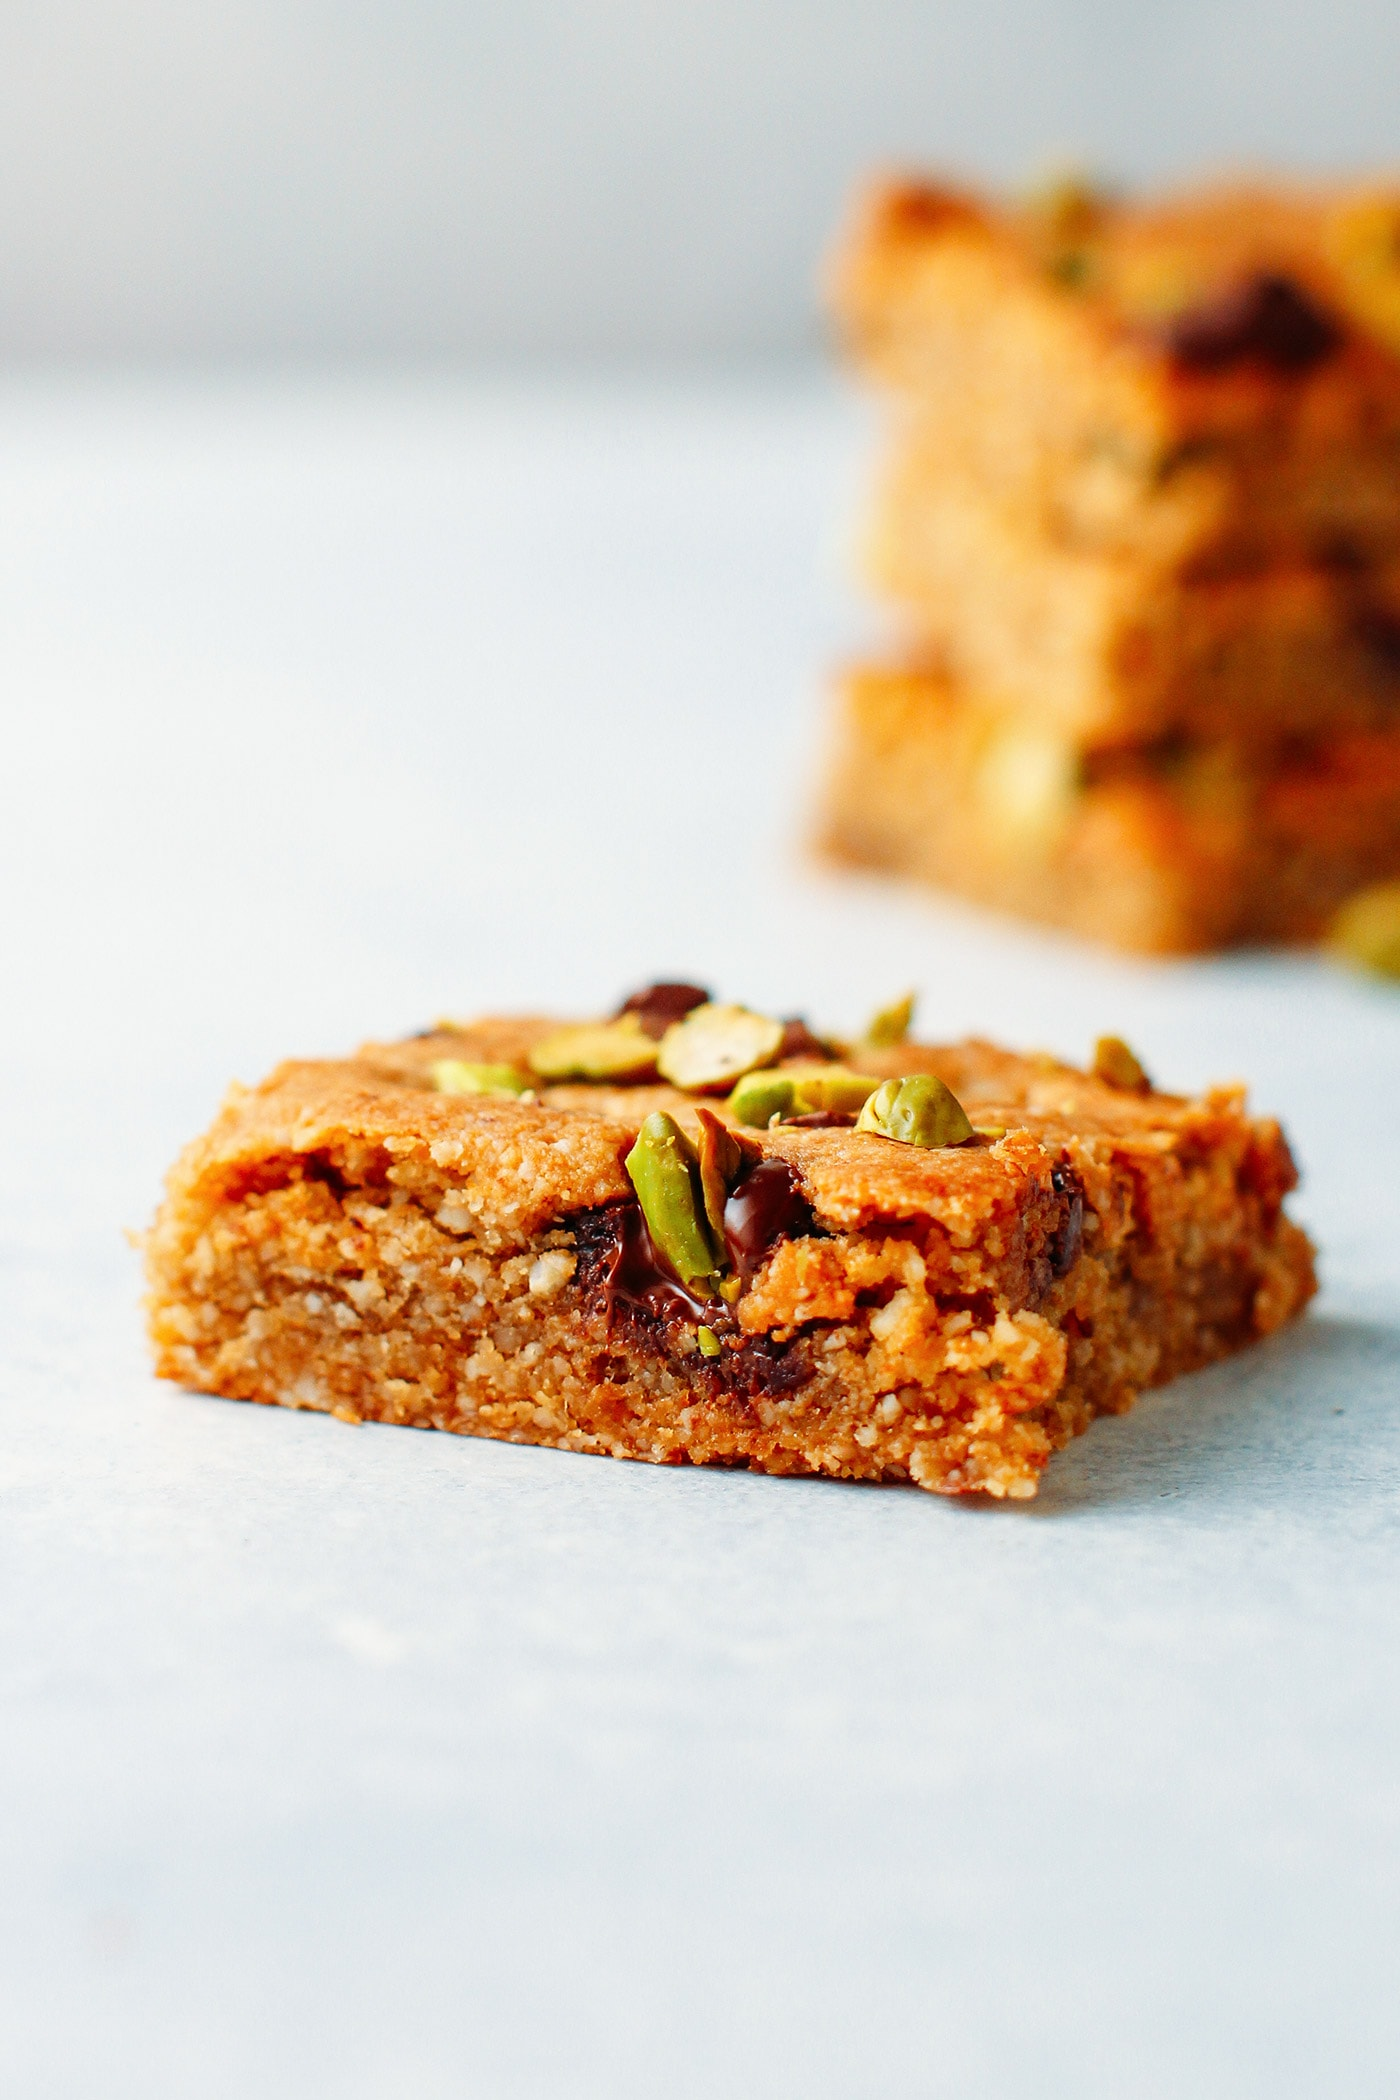 Amazing Pistachio & Chocolate Blondies (Vegan, GF, Paleo)